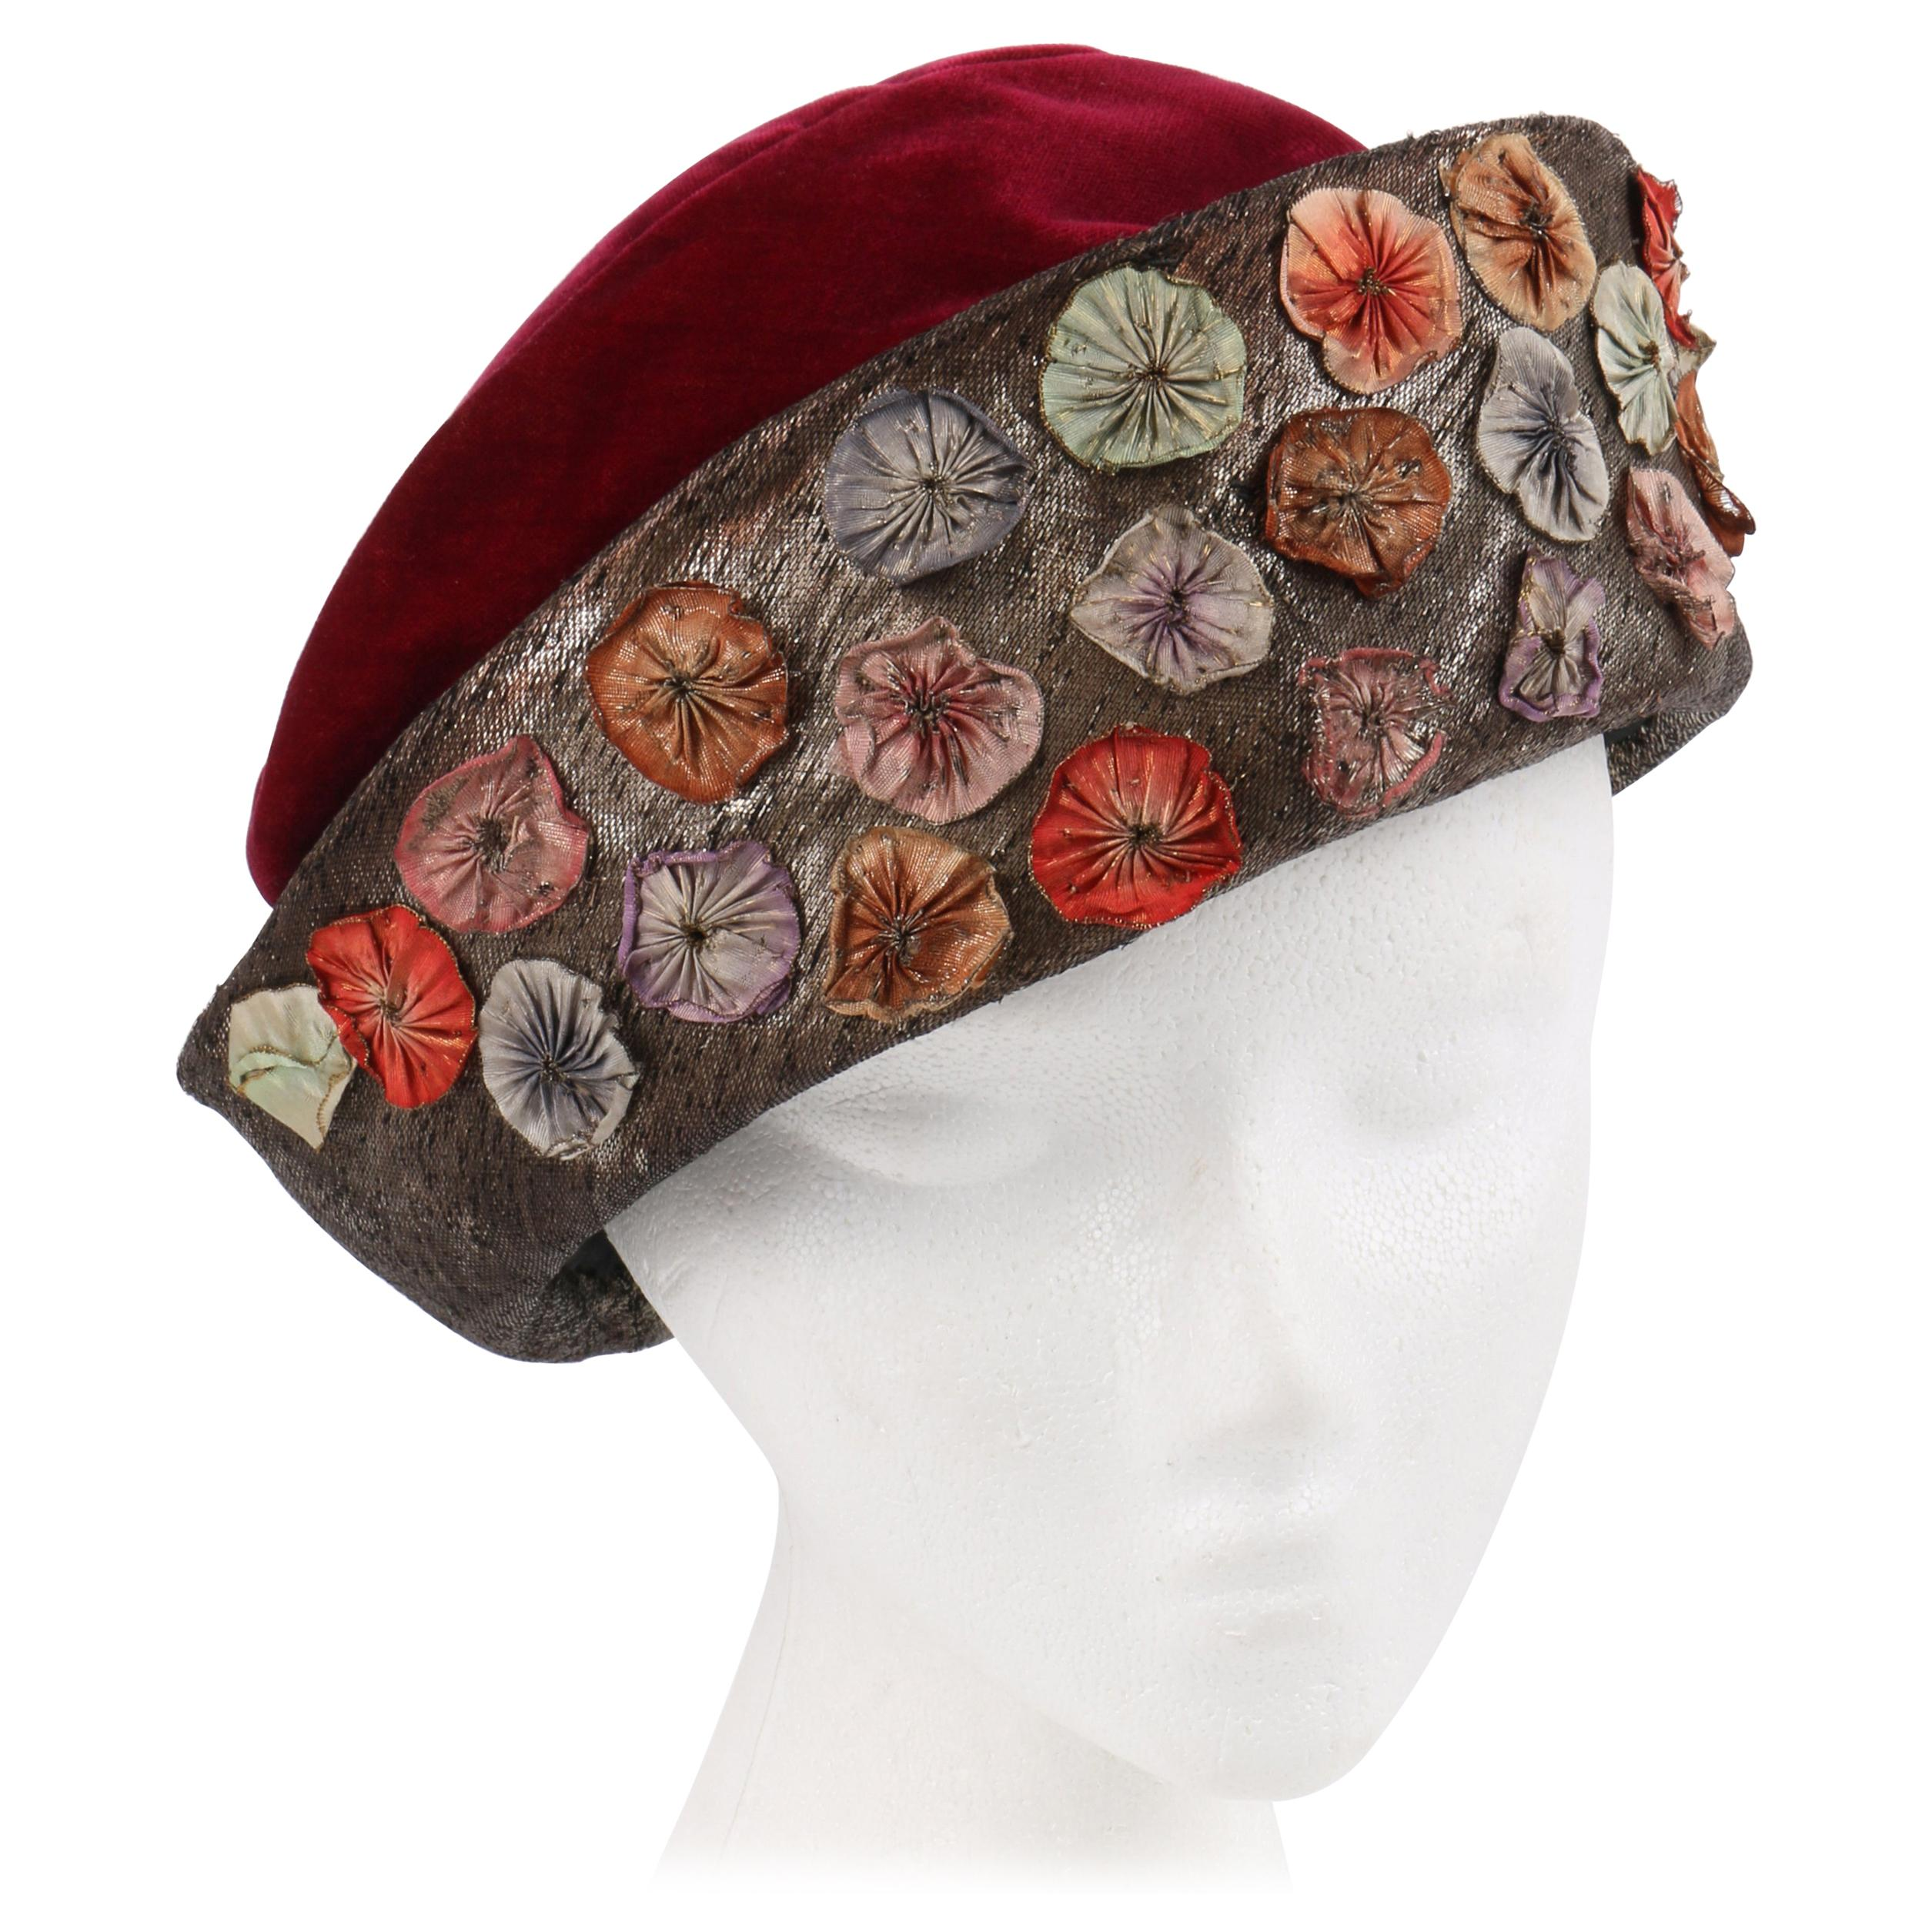 Millinery Couture c.1920s Wine Red Velvet Metallic Flower Embellished Cloche Hat